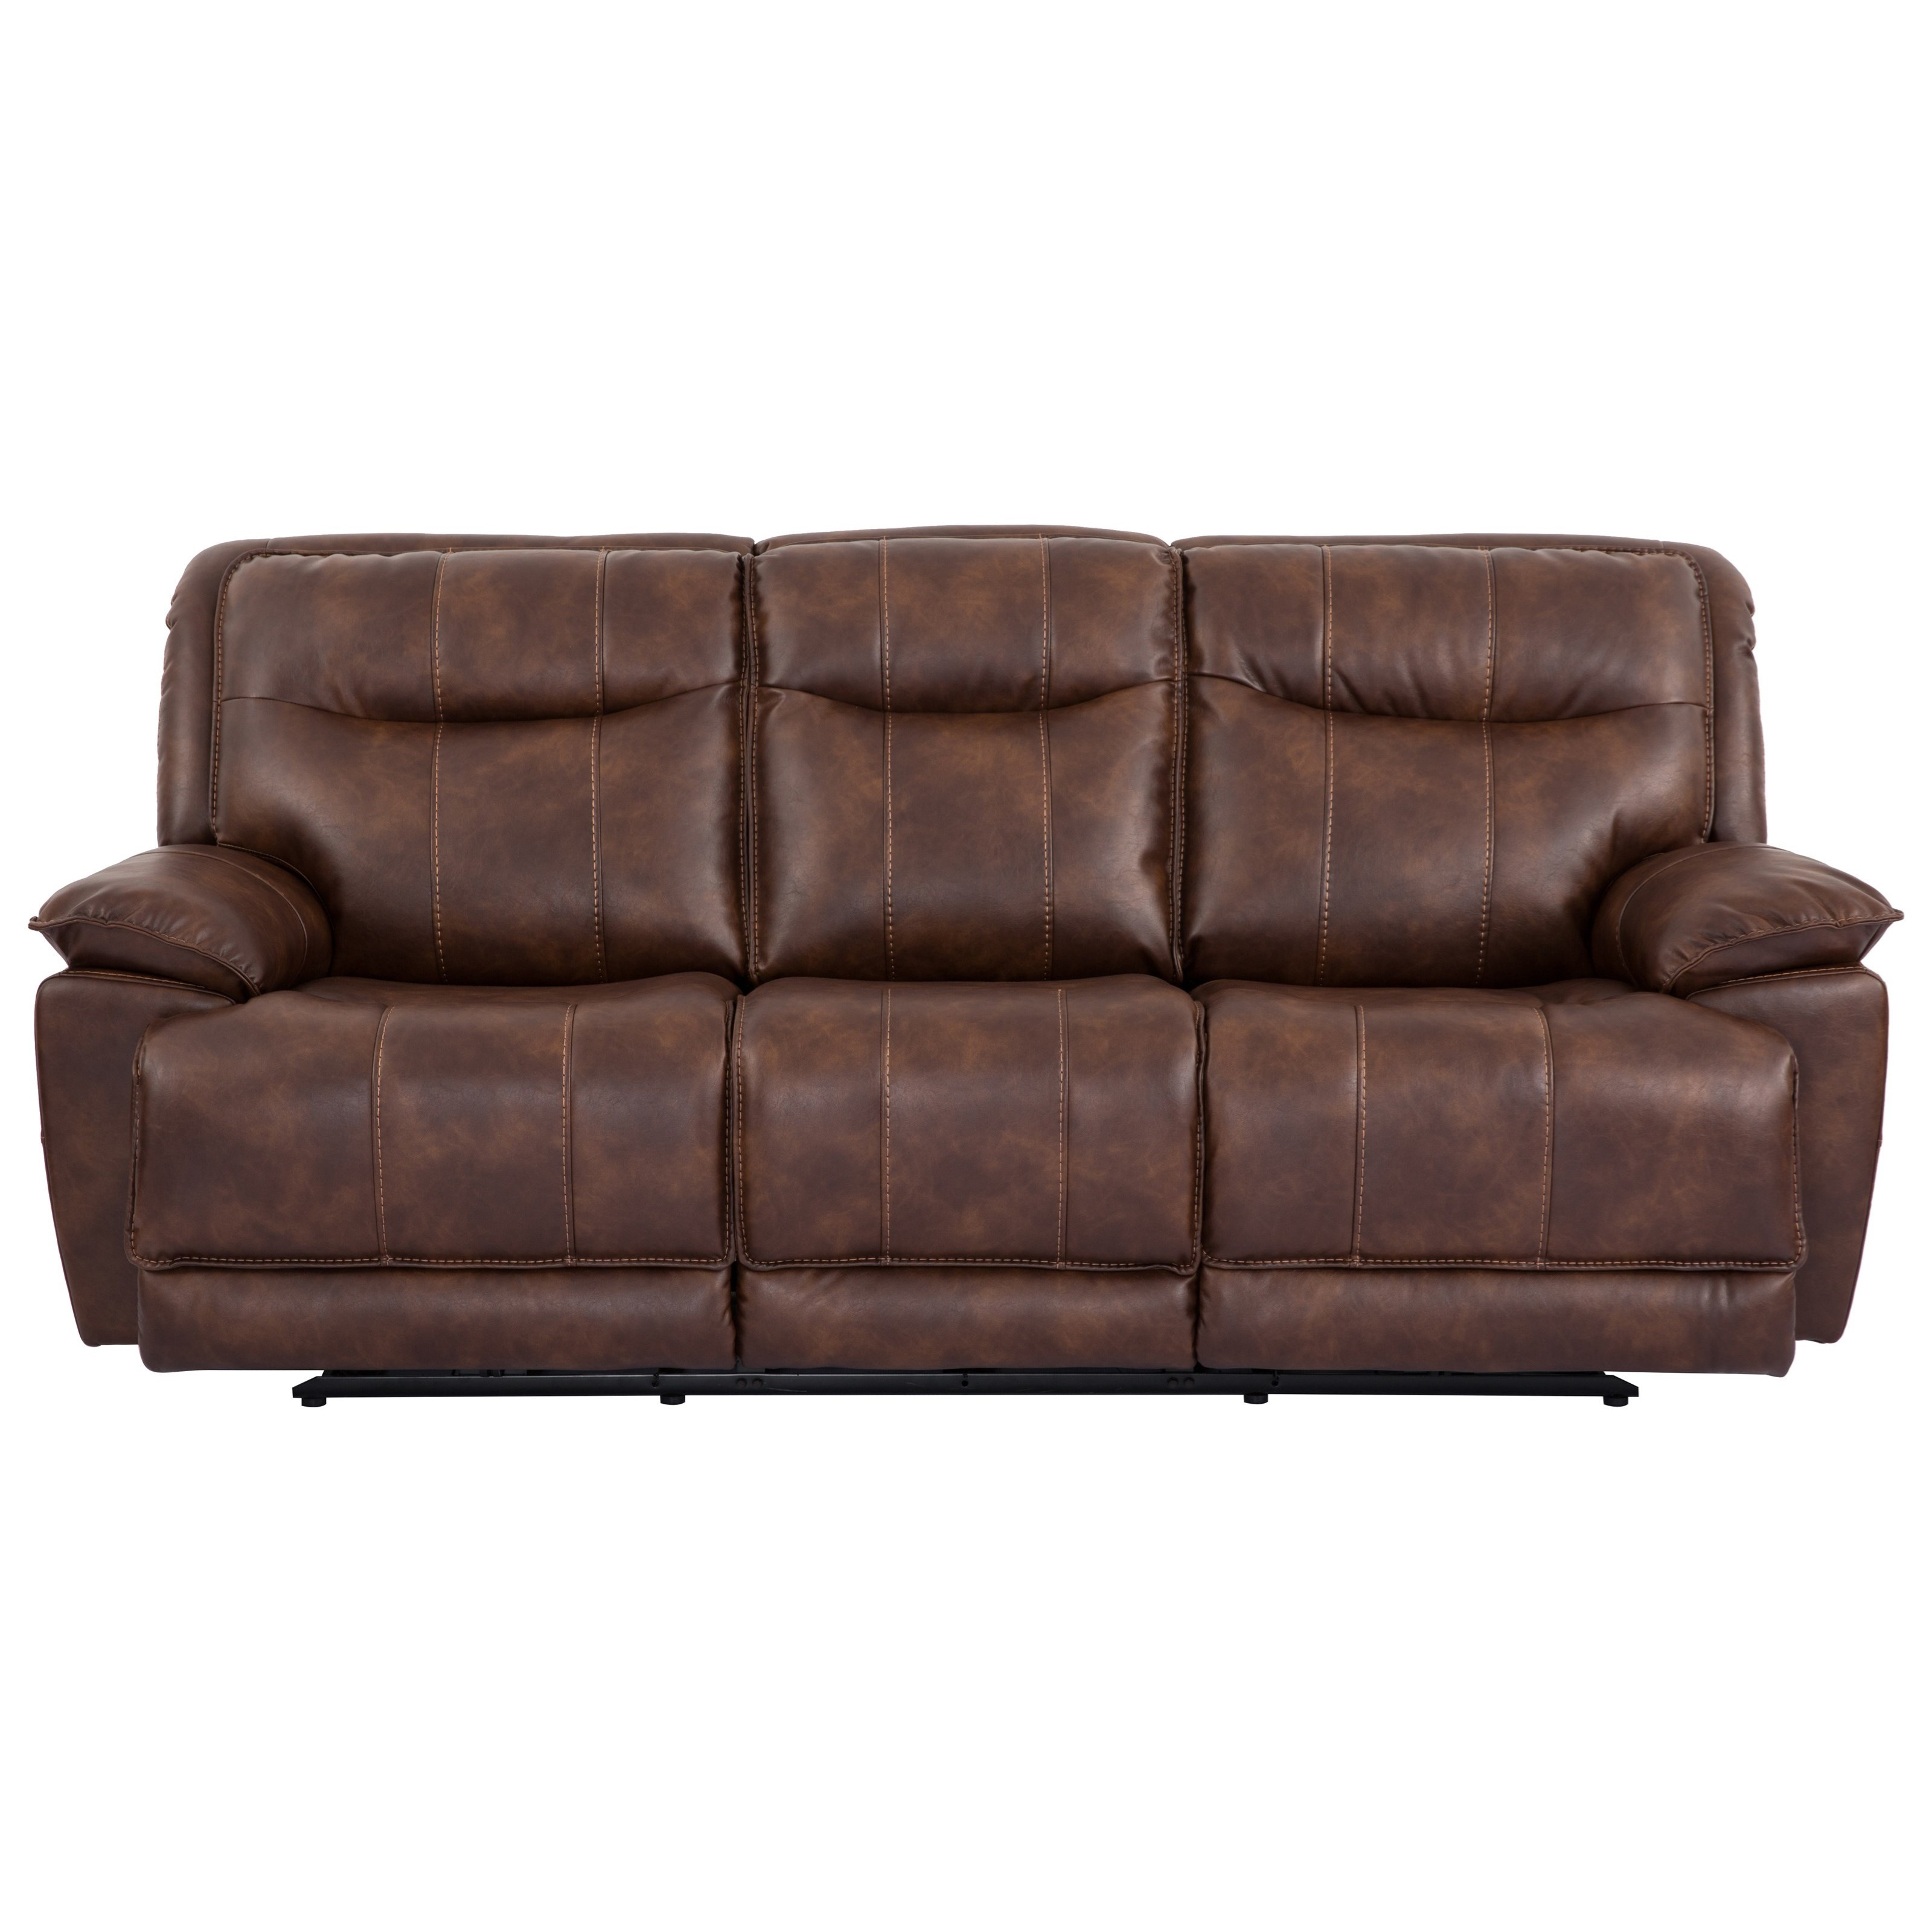 Cheers Sofa X9918m Reclining Sofa With Pillow Arms Royal Furniture Reclining Sofas